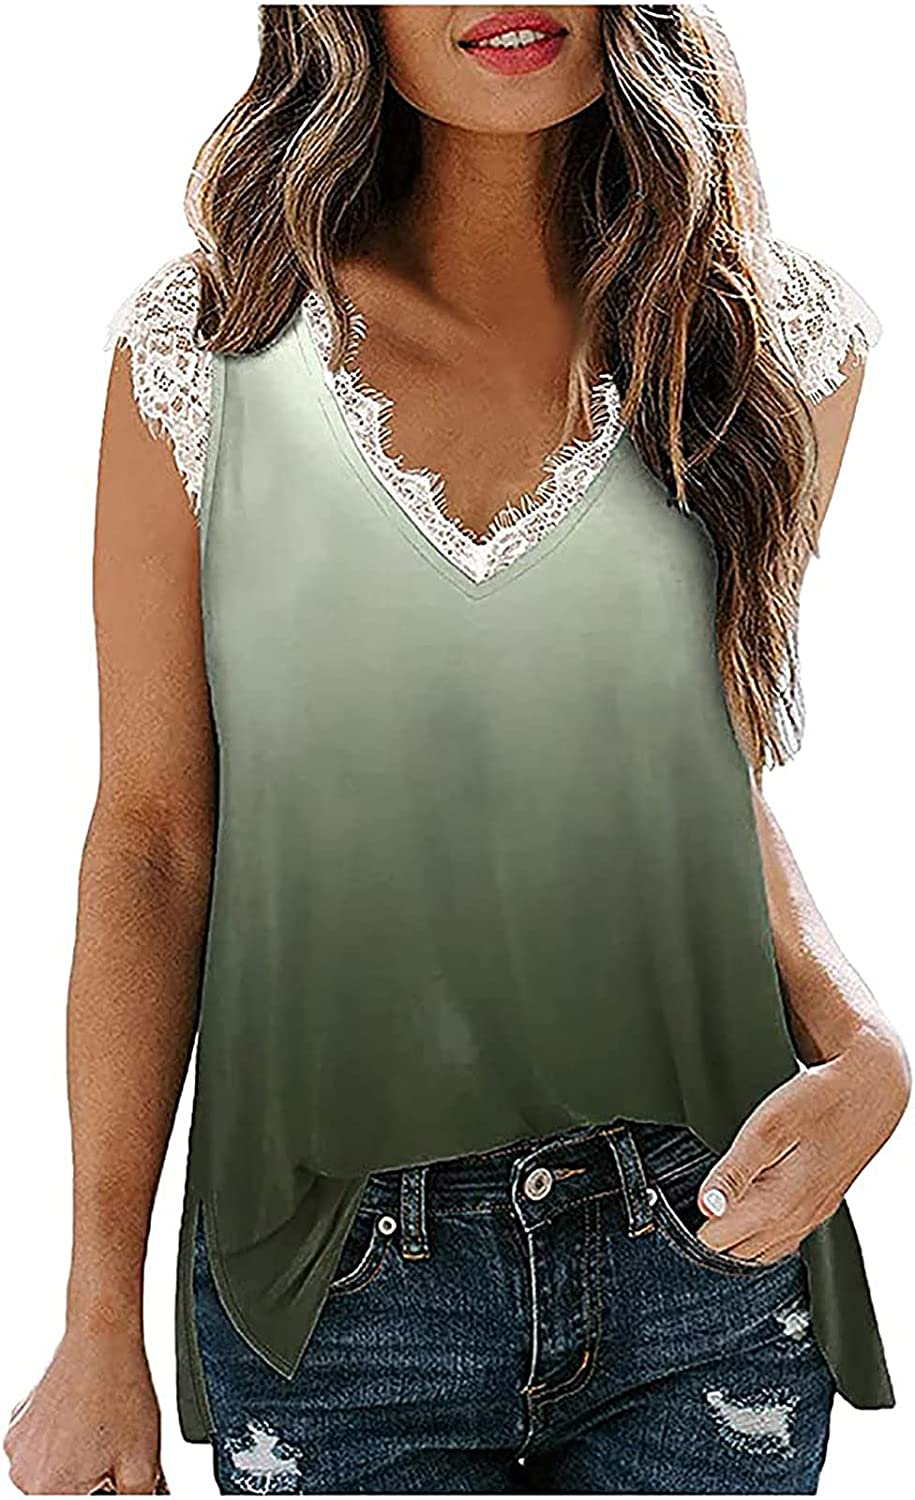 Tank Tops for Women Trendy Lace V Neck Grandient Tunic Sleeveless Tshirts Casual Slim Lightweight Thin Tee Vest